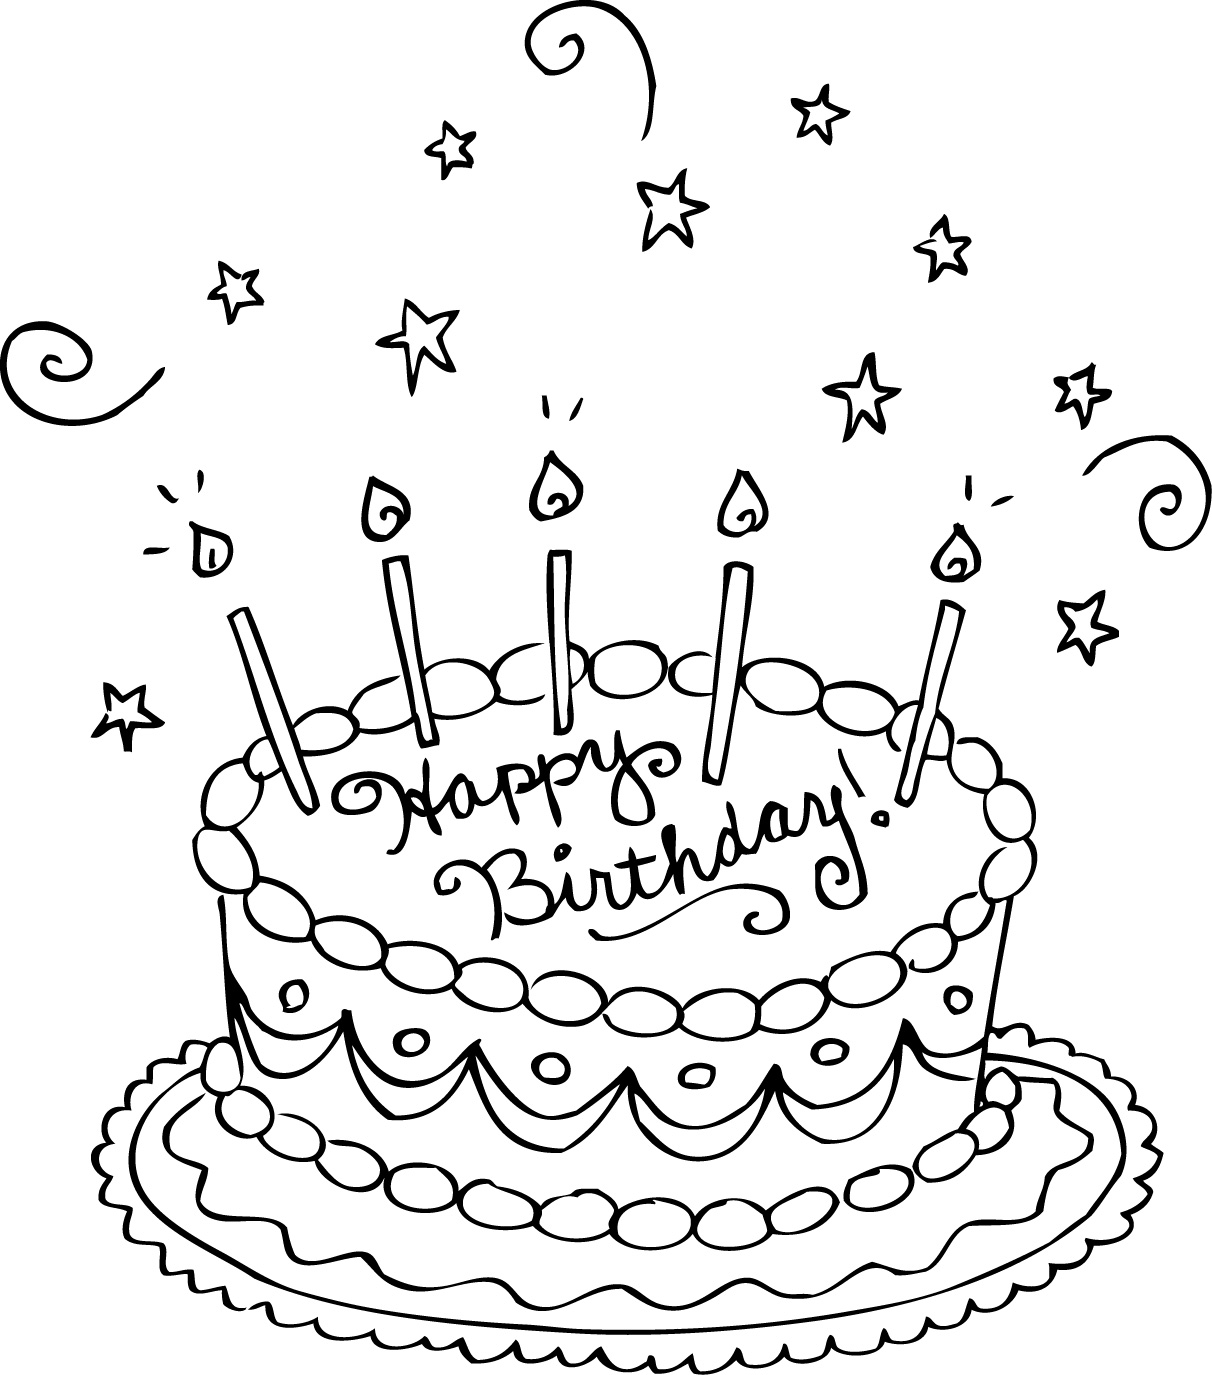 - Free Printable Birthday Cake Coloring Pages For Kids